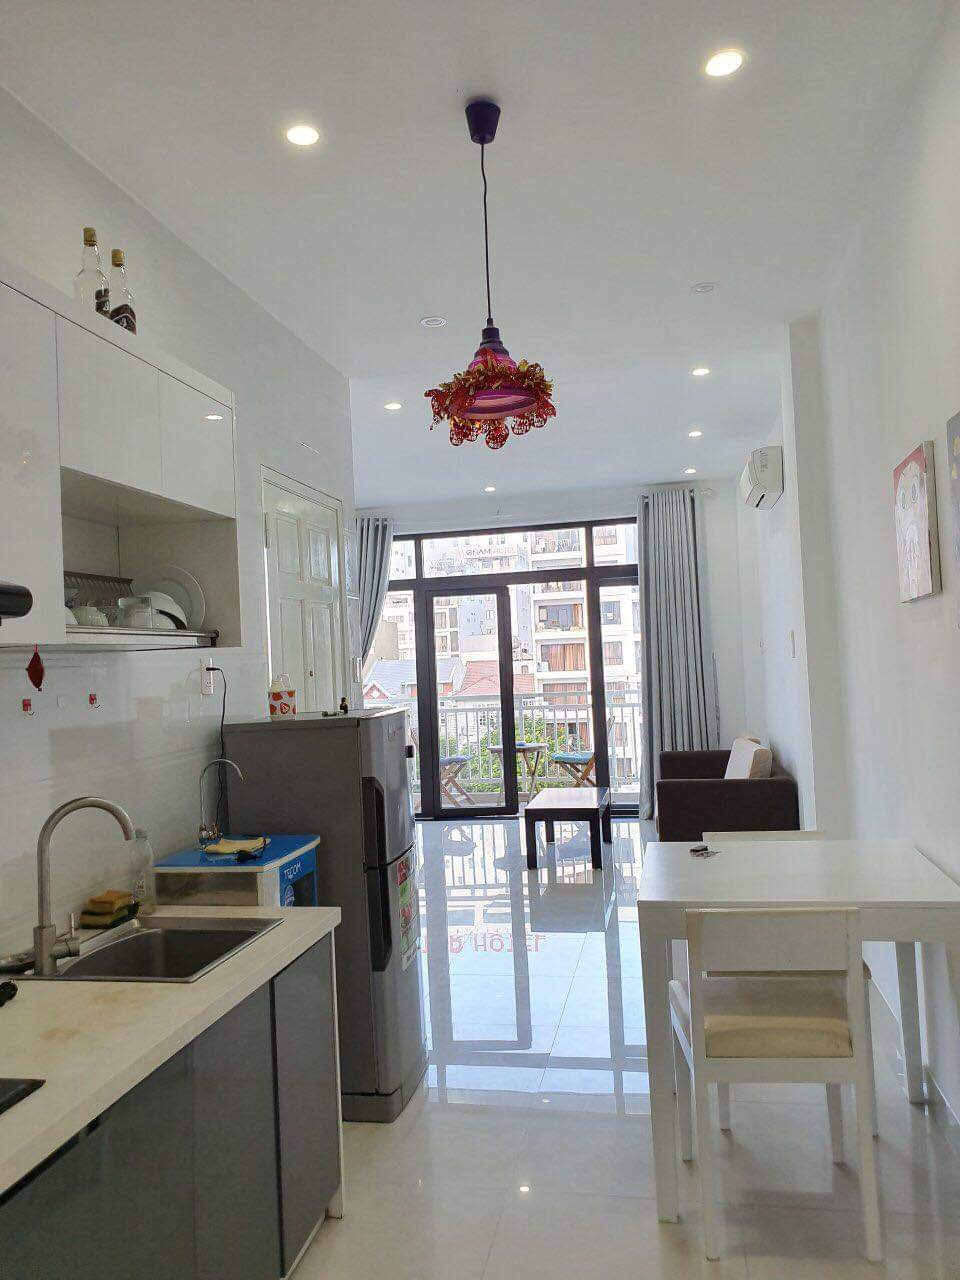 1Br apartment in An Thuong, close to My Khe beach – A495